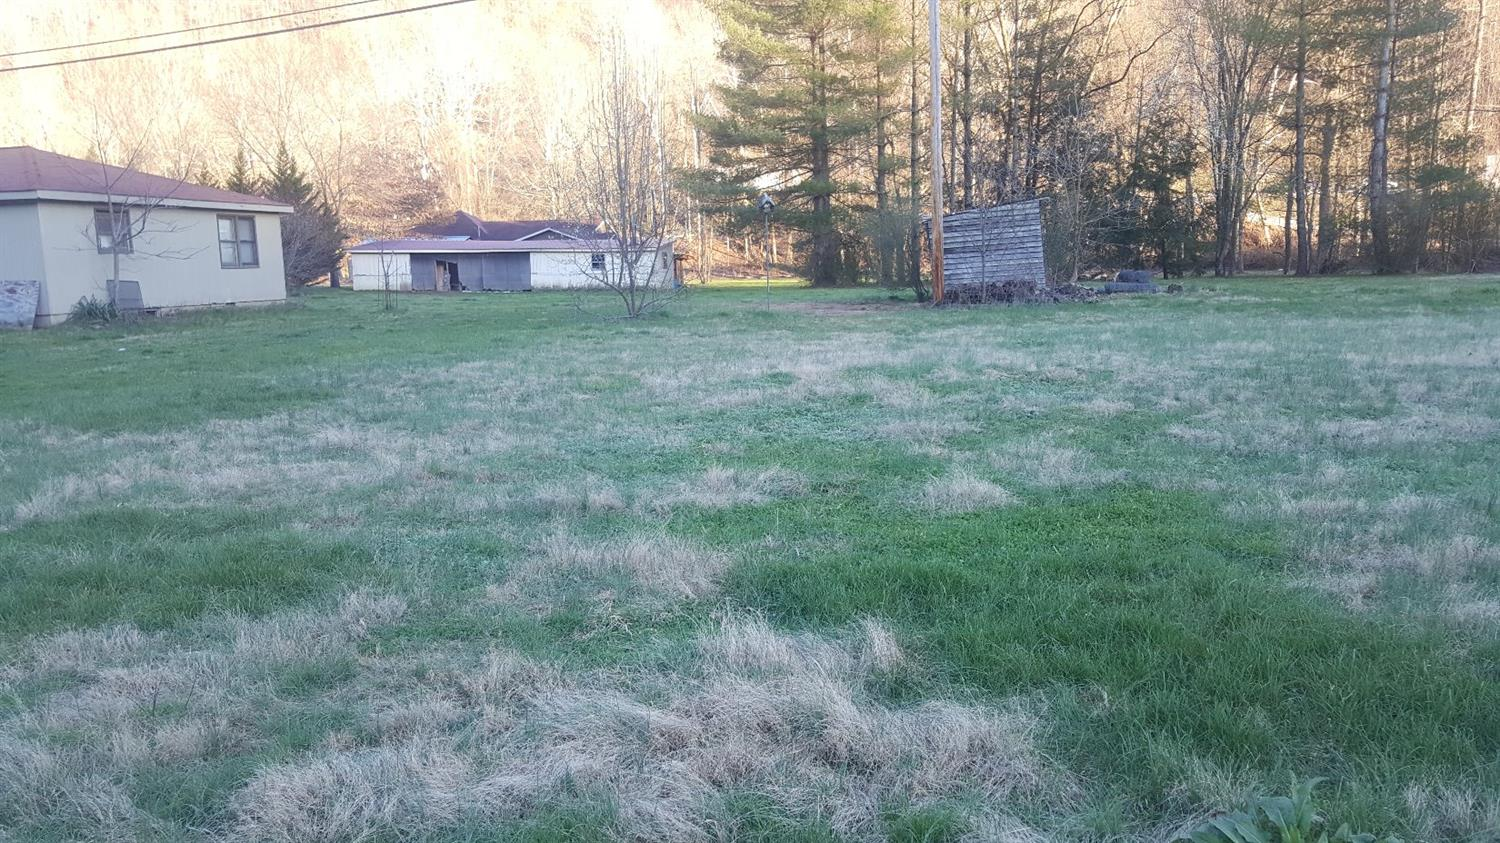 151 ANDERSON ST, HARLAN, KY 40831  Photo 37